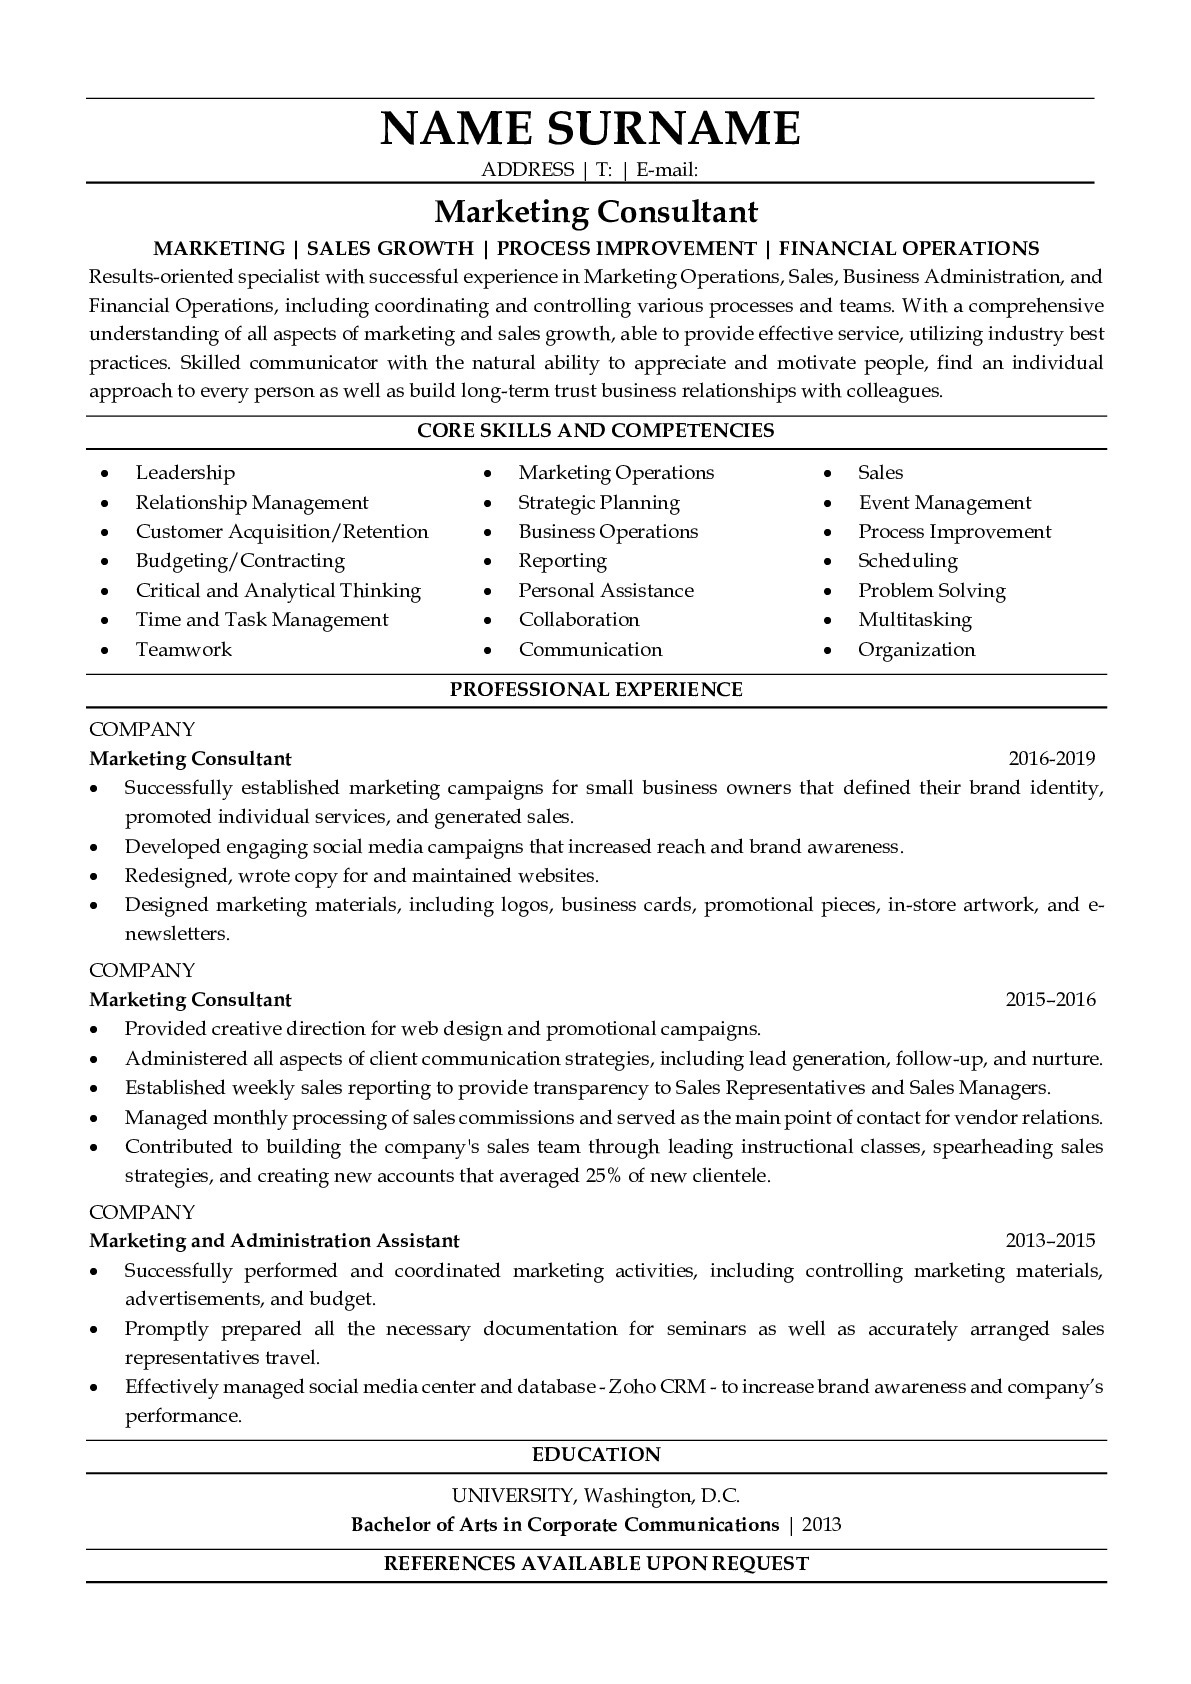 Resume Example for Marketing Consultant